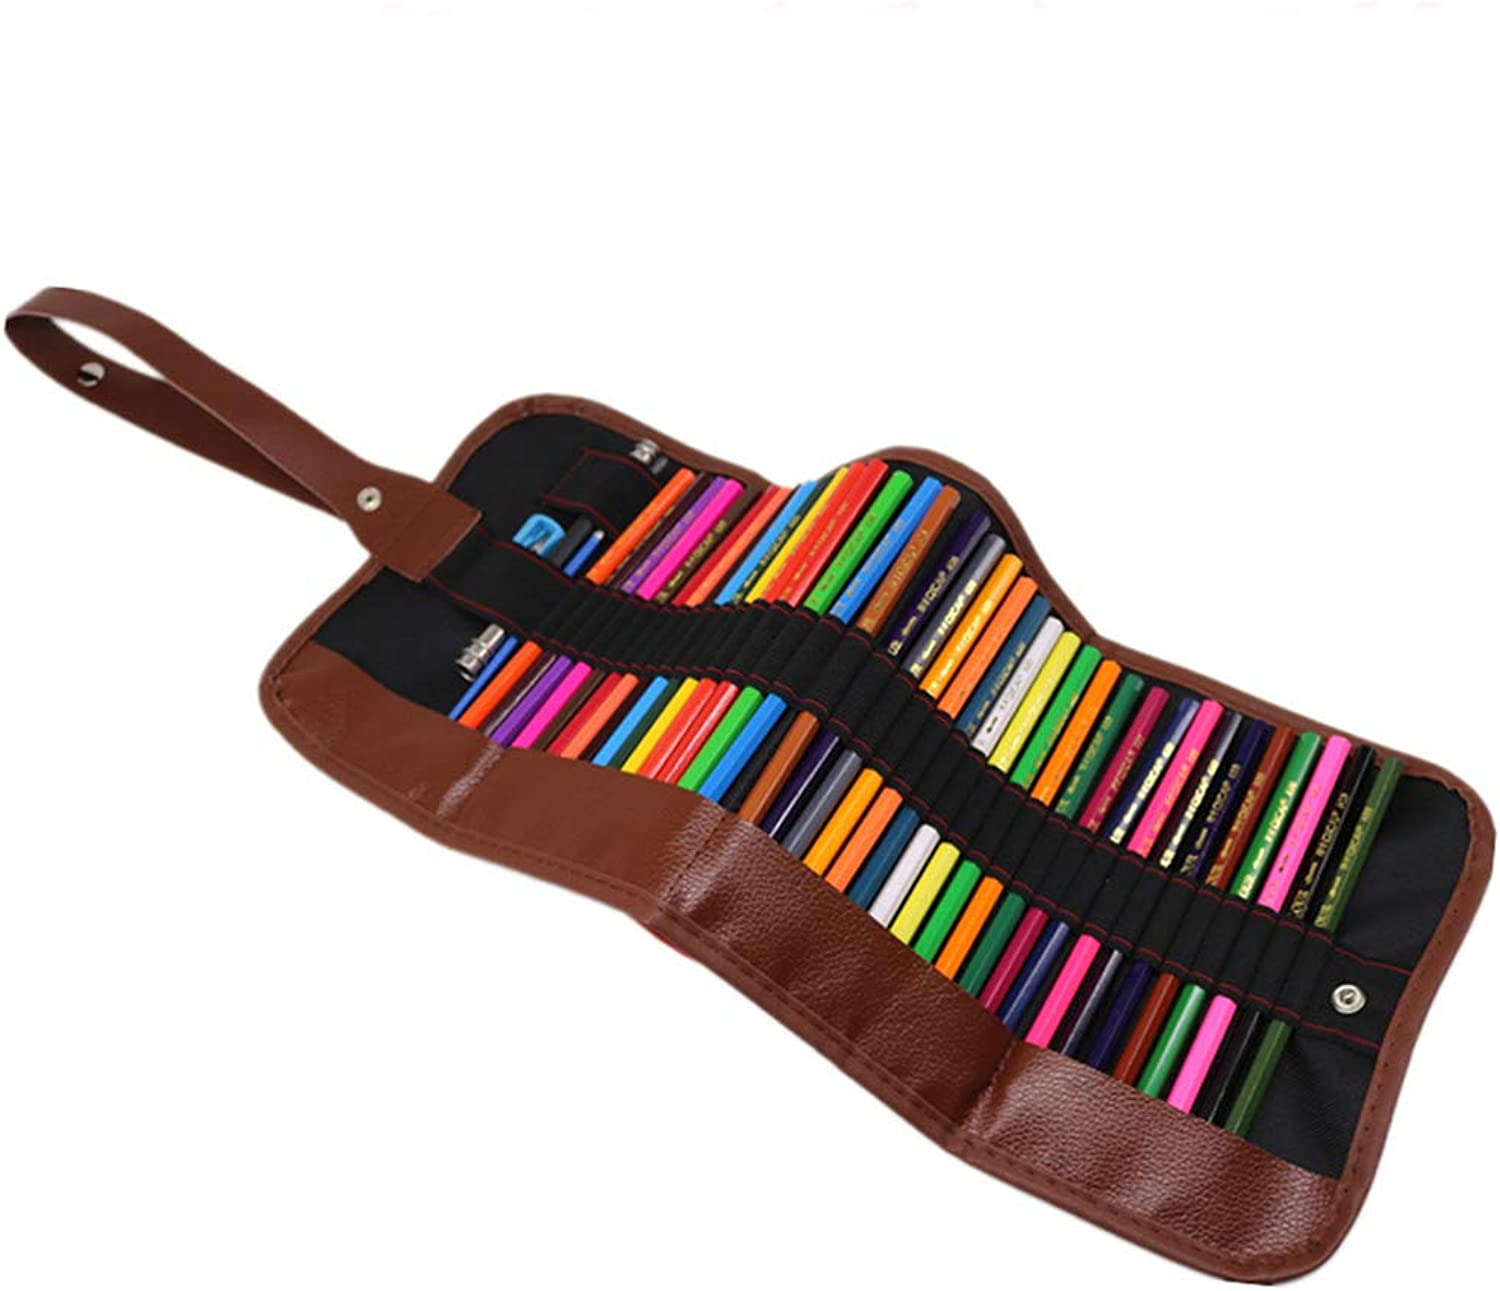 Colouring Pencil Set Kids School Supplies Non-Toxic Water Soluble Colouring Assorted colors with Sharpener Rollable Canvas Bag Convenient and Easy-to-Carry